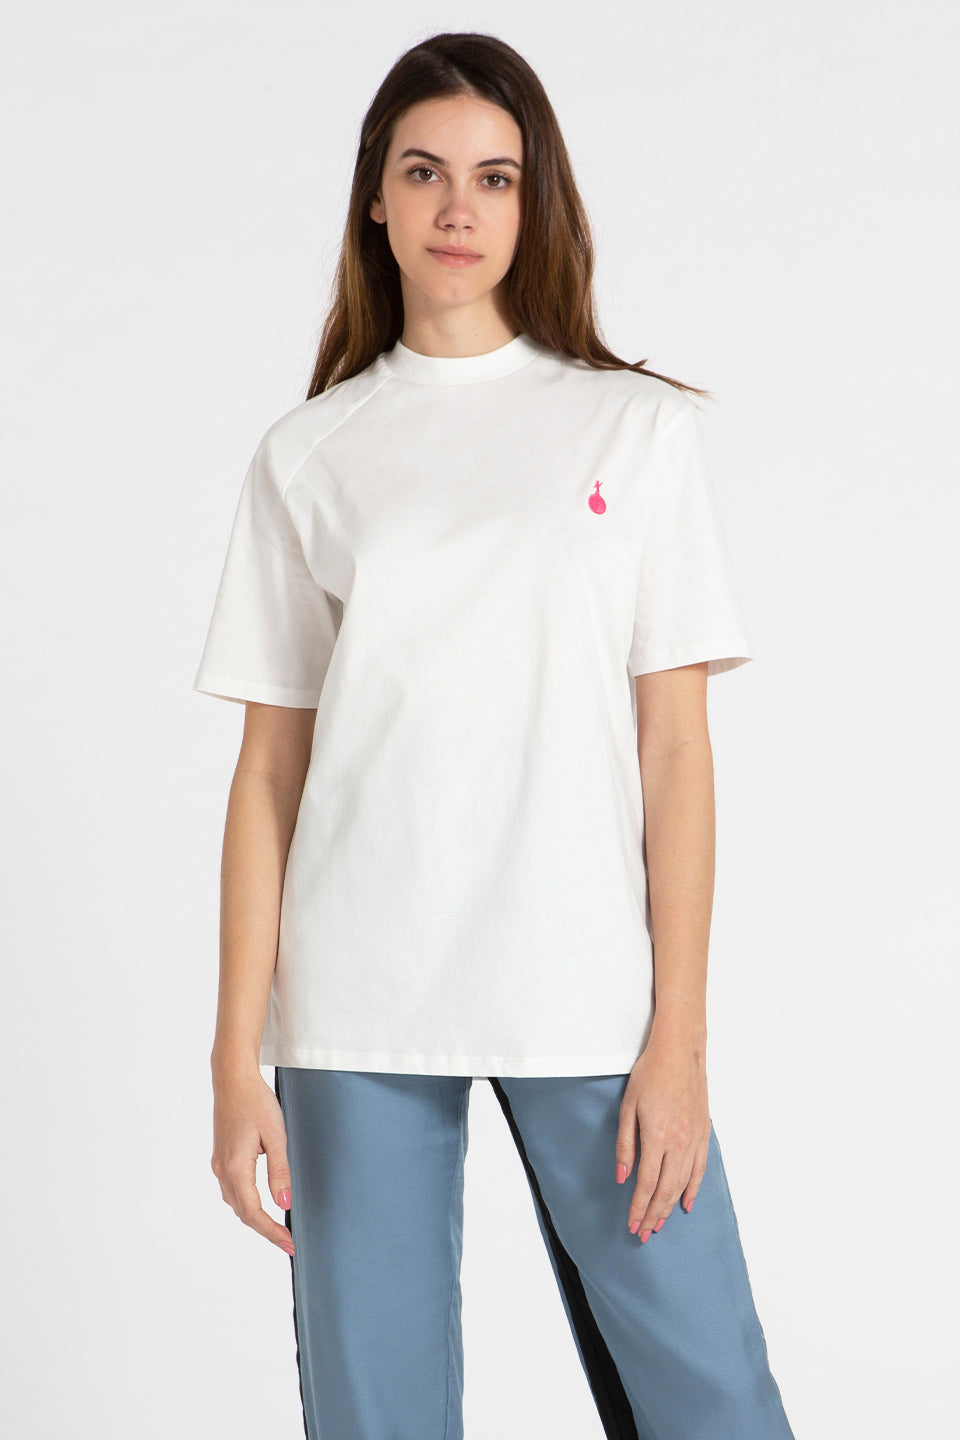 Slash T-shirt white with pink Martian